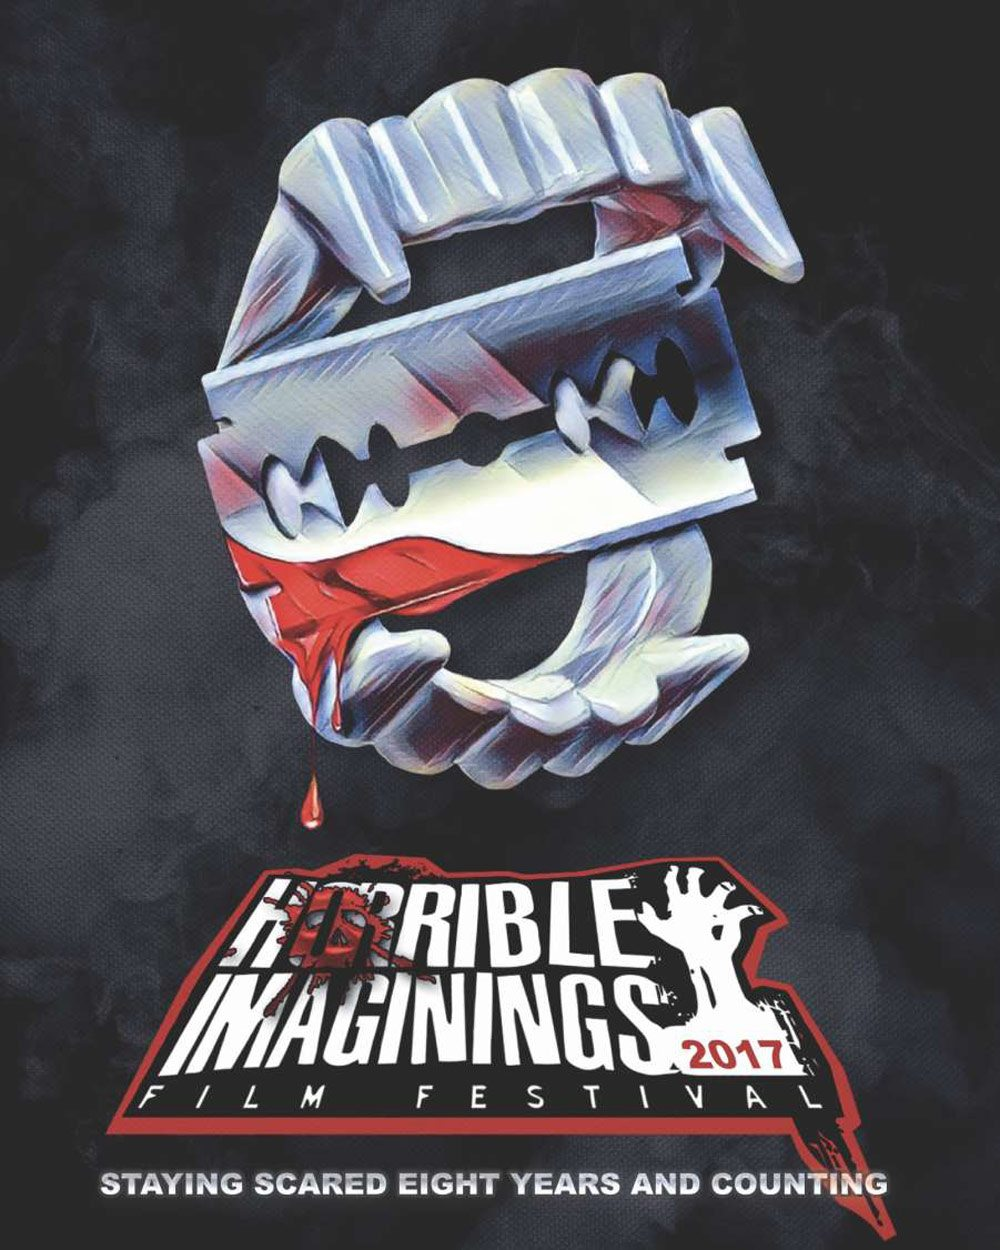 horrible imaginings 2017 - San Diego's Horrible Imaginings Film Fest Announces Full 2017 Lineup